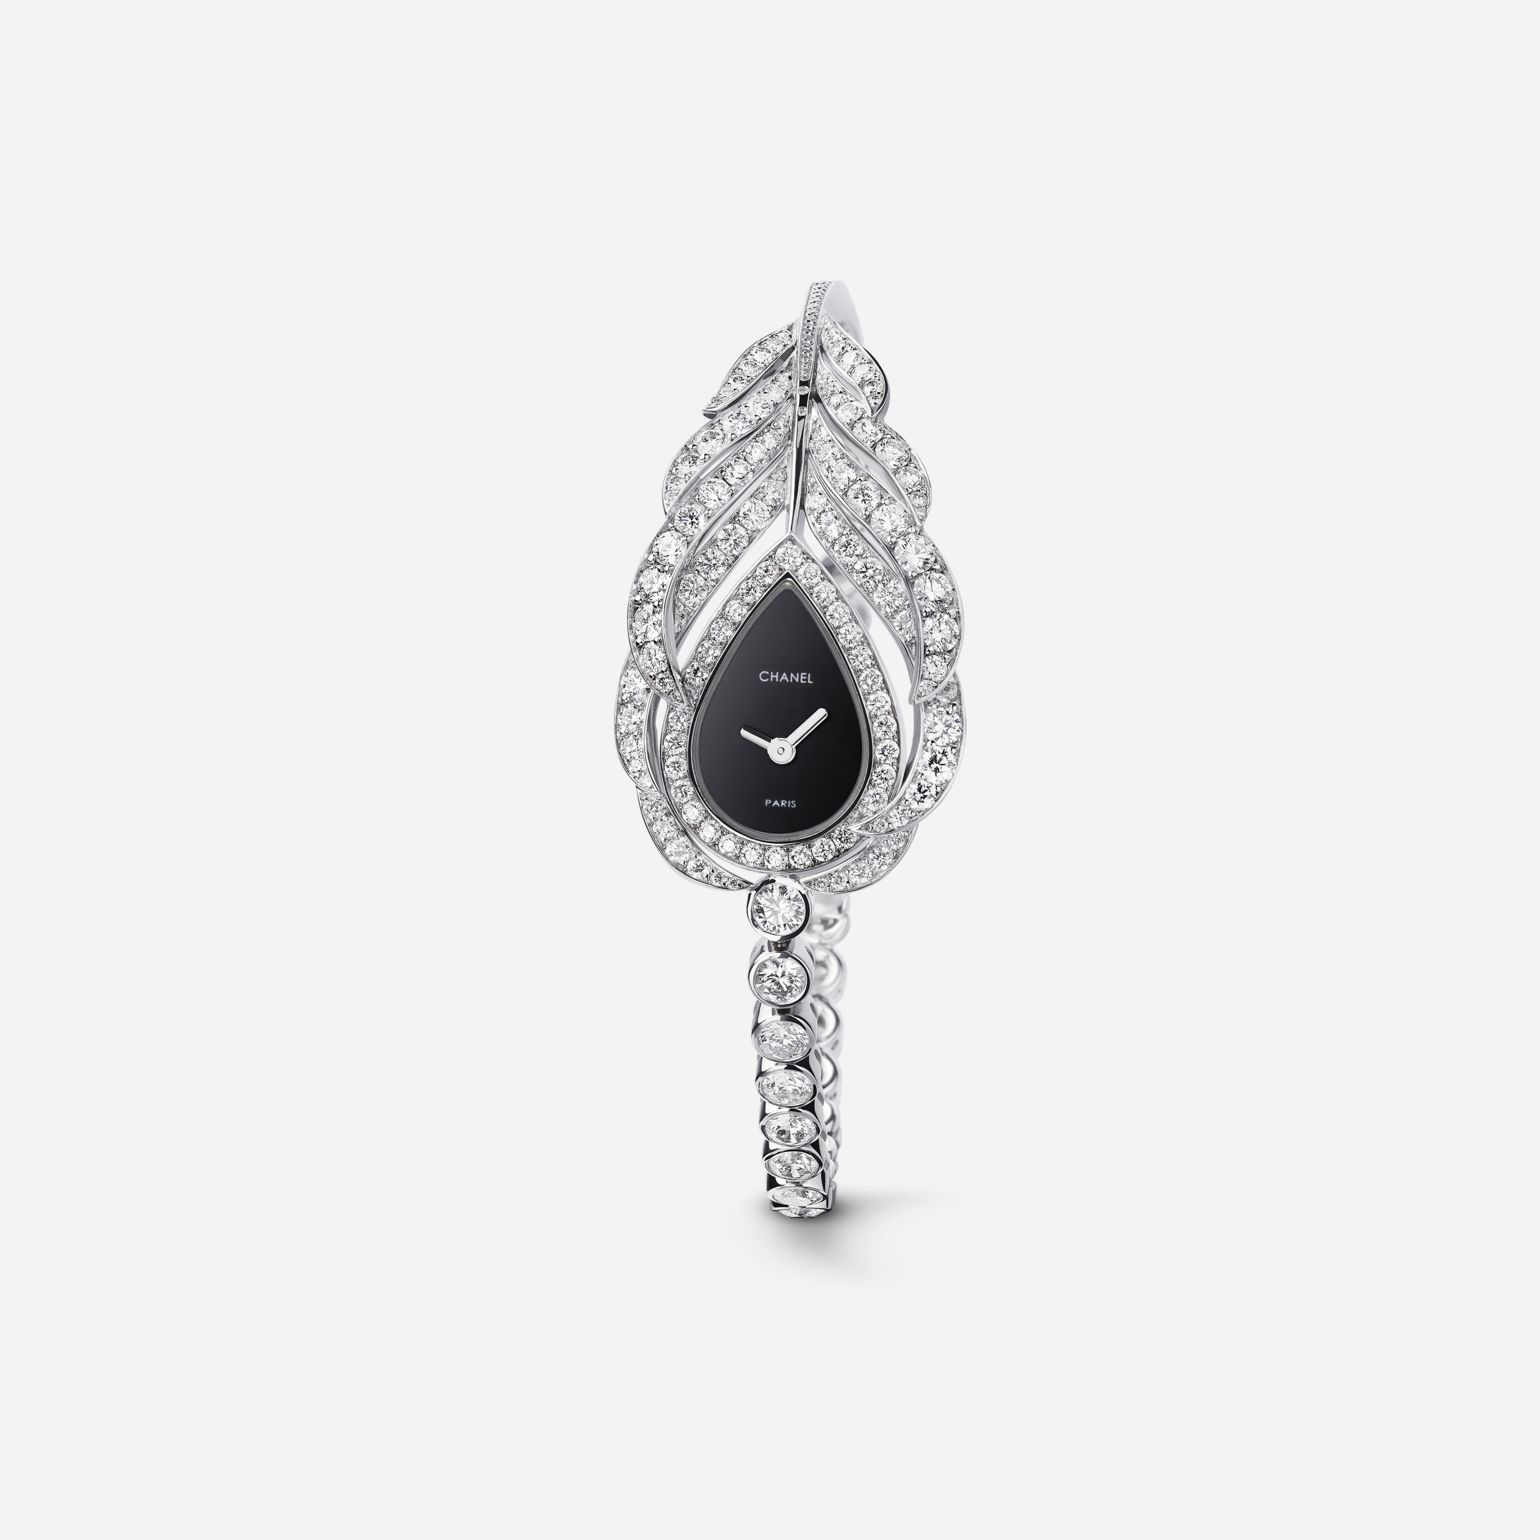 Montre Joaillerie Plume de CHANEL Motif plume en or blanc 18 carats, diamants et bracelet diamants